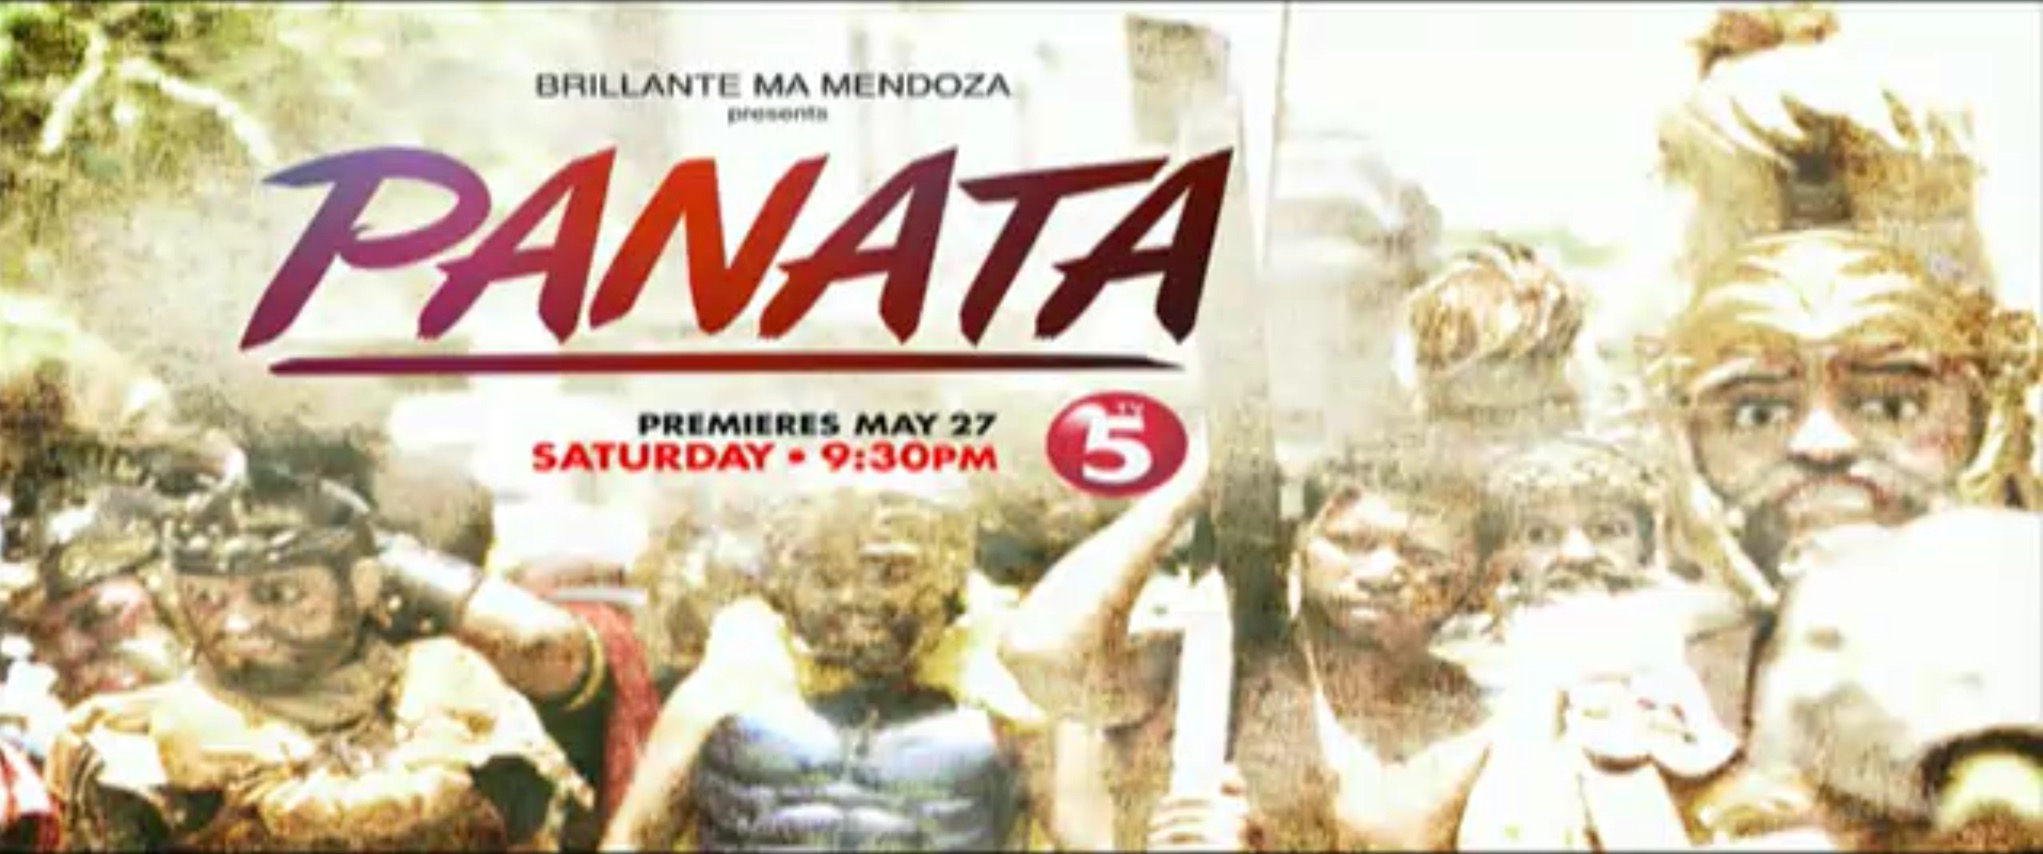 Brillante Mendoza Presents Panata